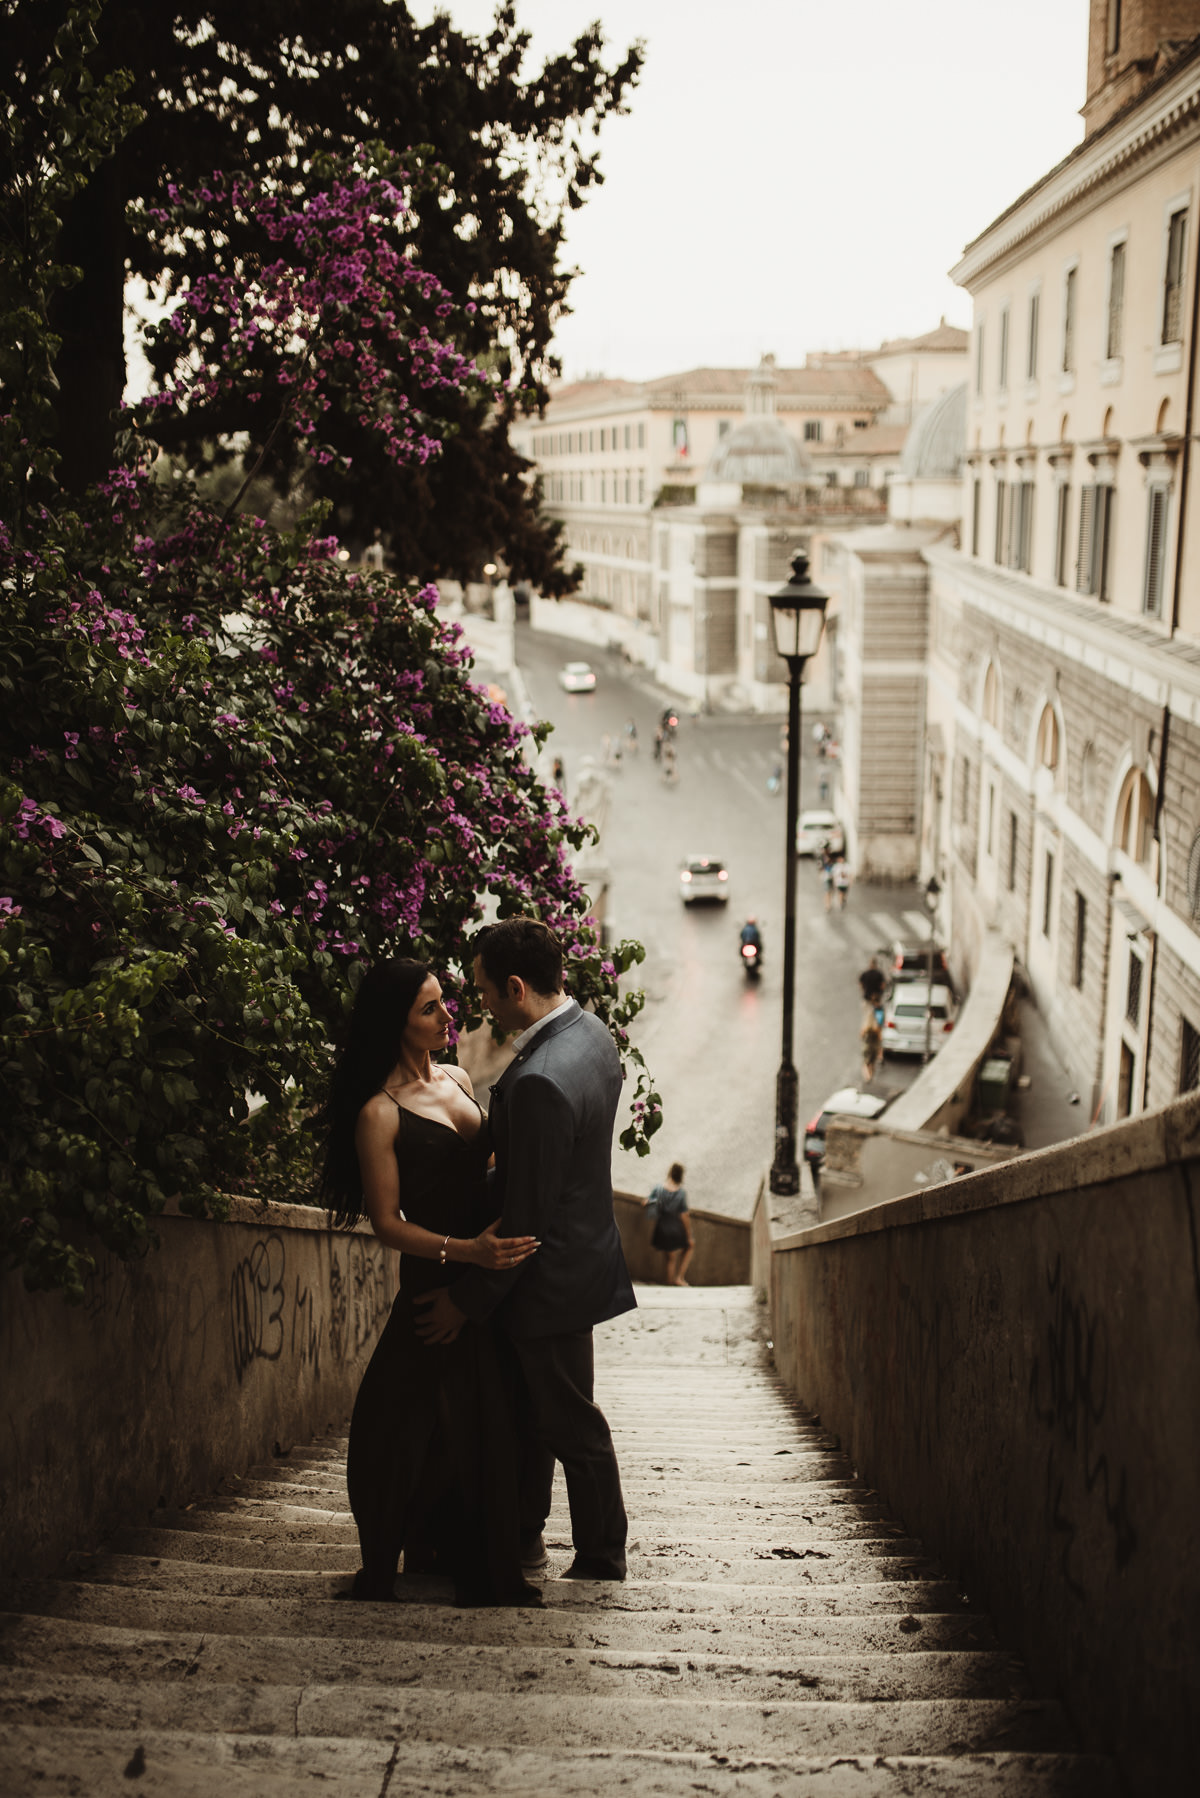 destination wedding photographer rome fotografo matrimonio roma casina valadier 019